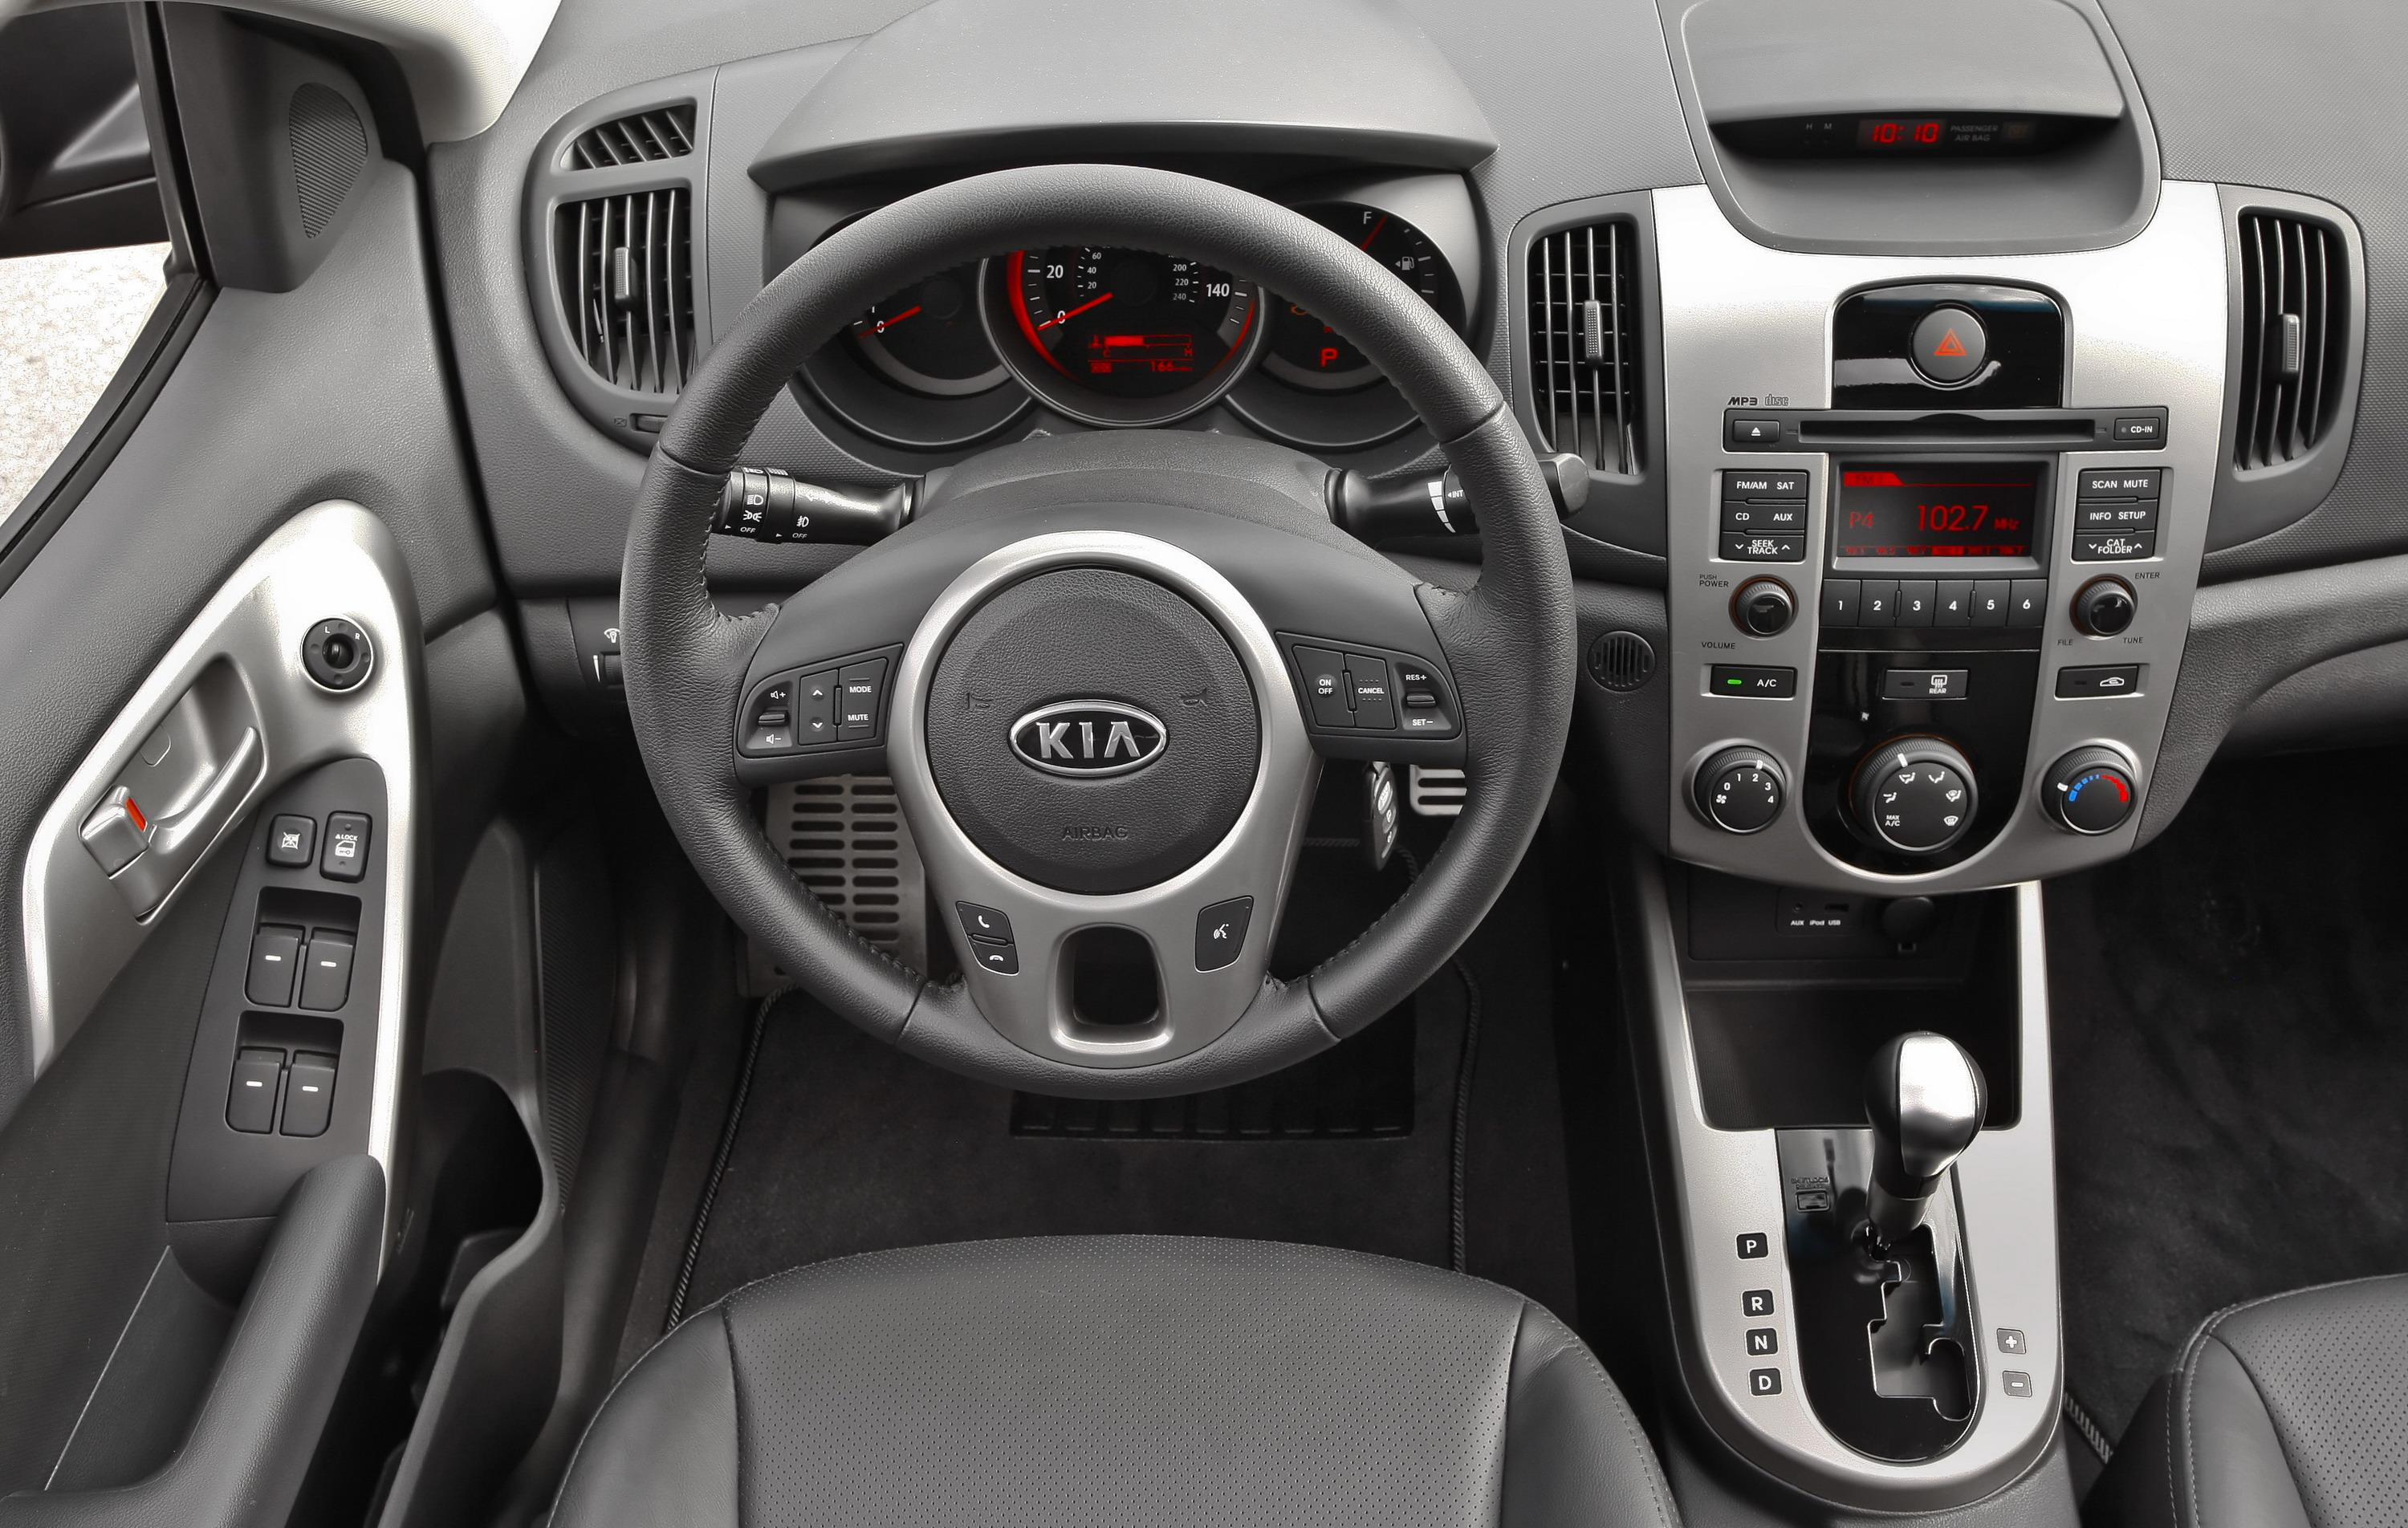 Kia Forte: Using the iPod device